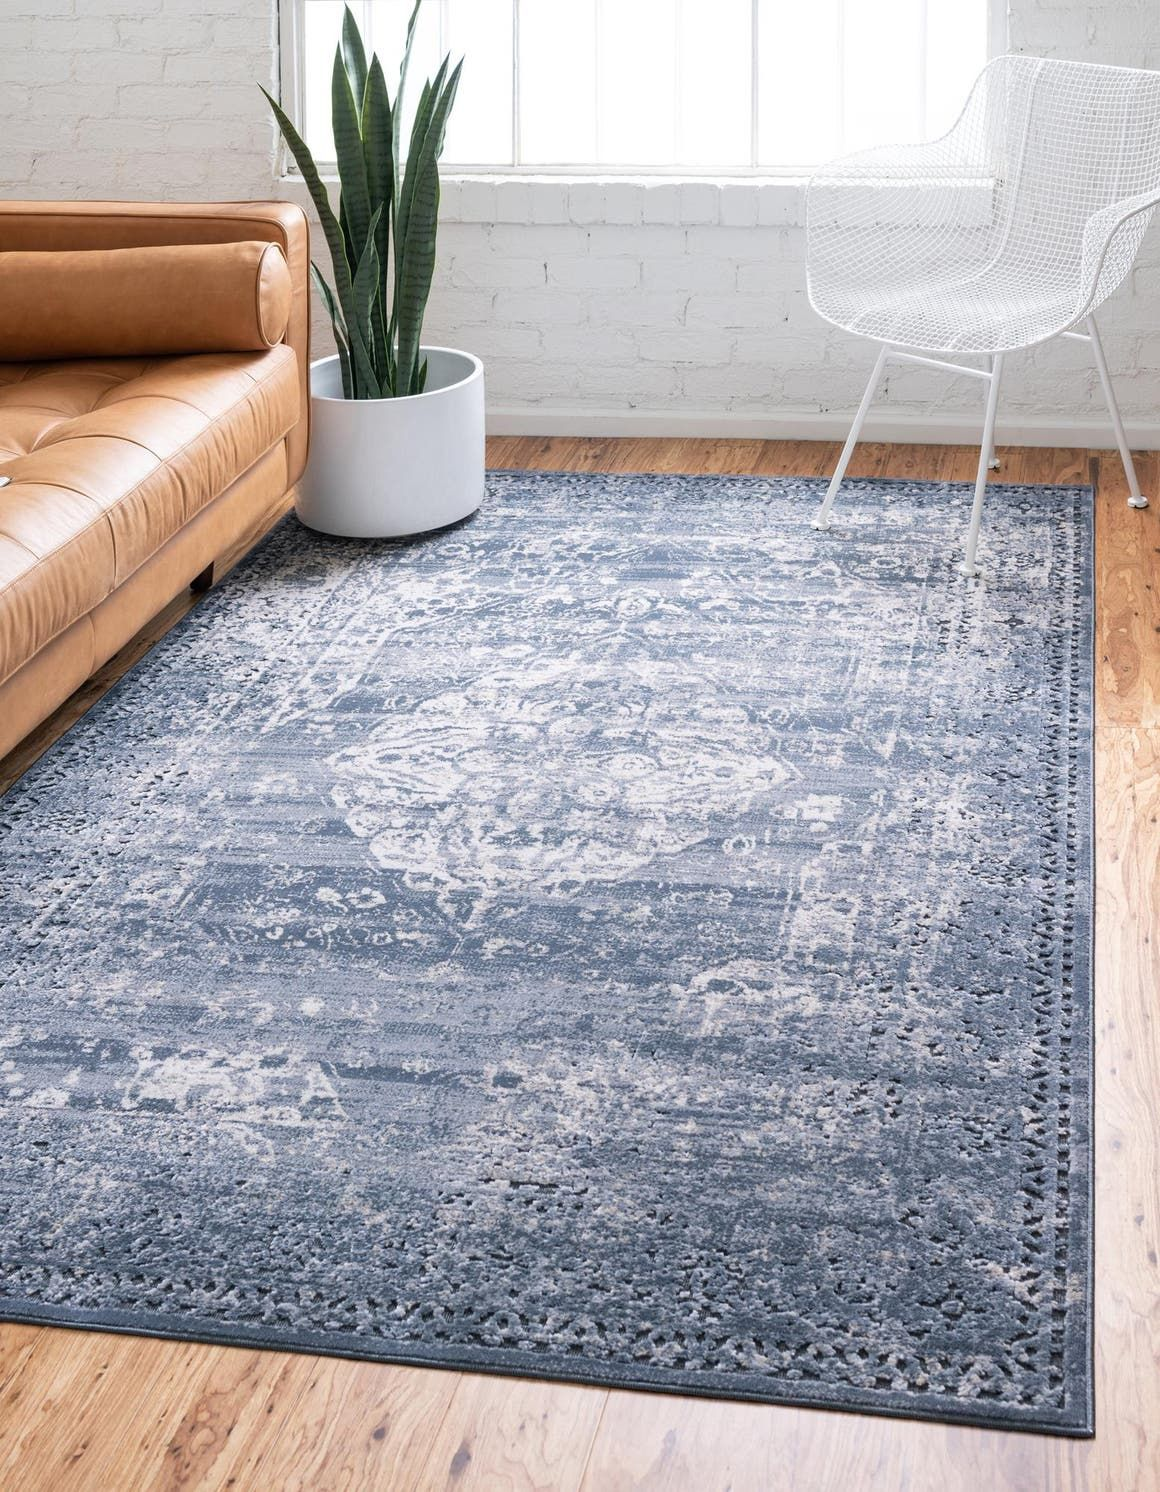 Graphite Gray Villa Area Rug Unique Loom Rugs Vintage Style Rugs